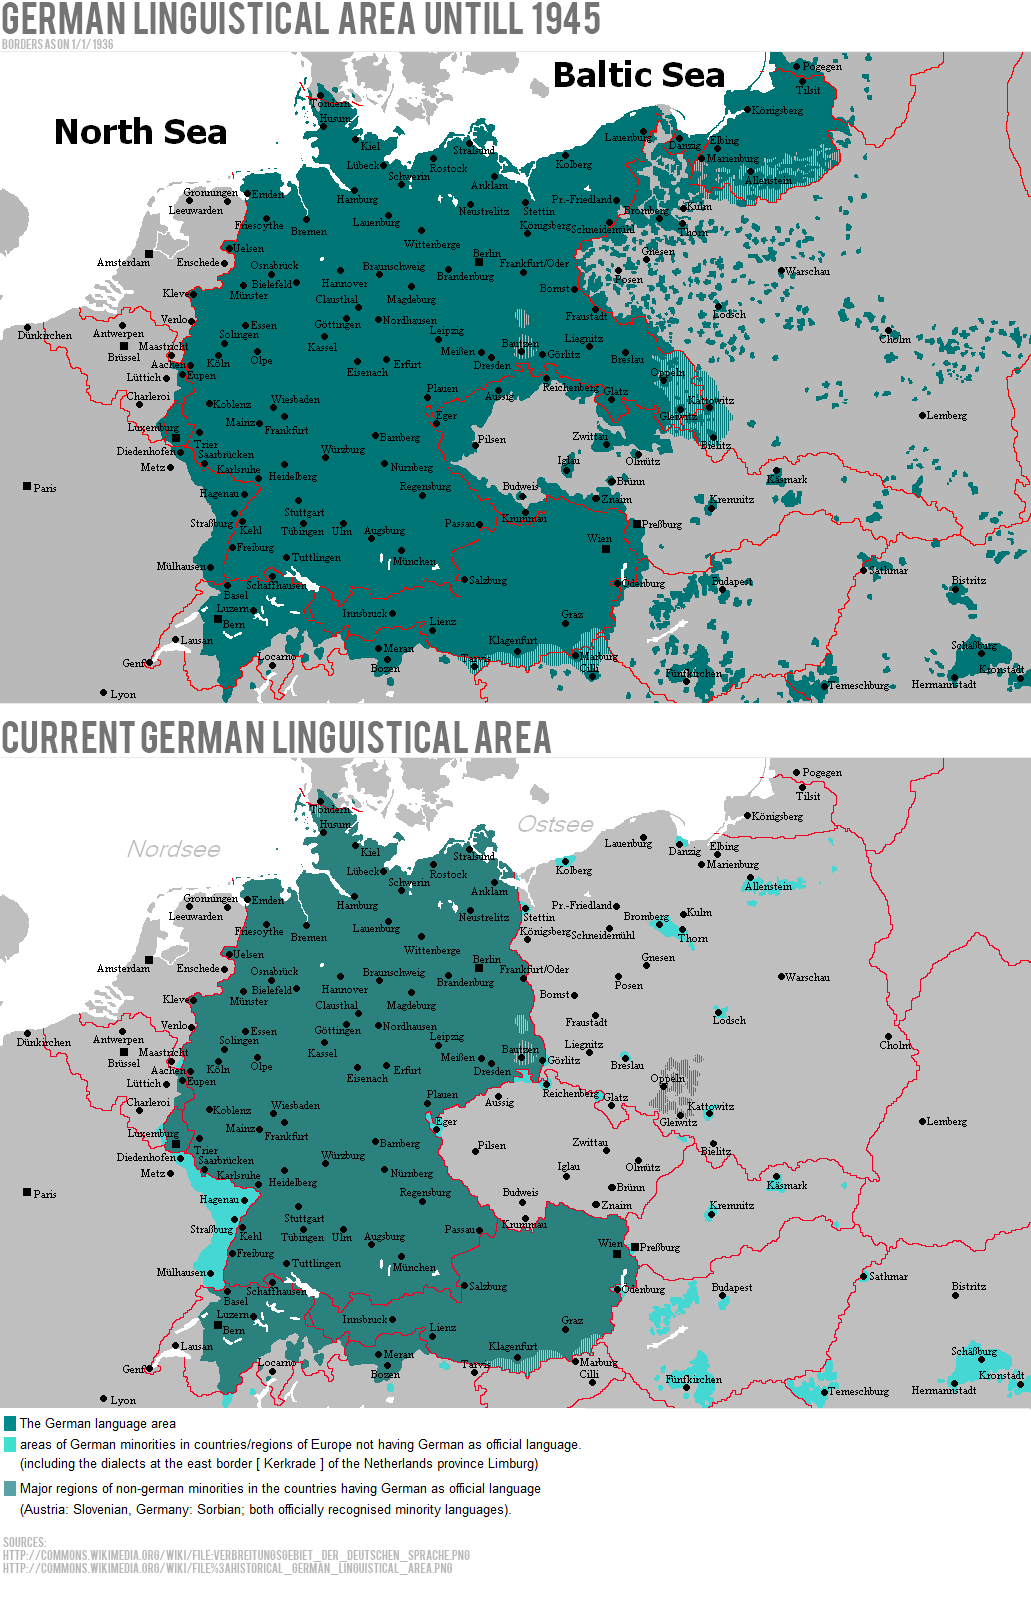 German Linguistic Area until 1945 vs. Now | History: The World Wars ...